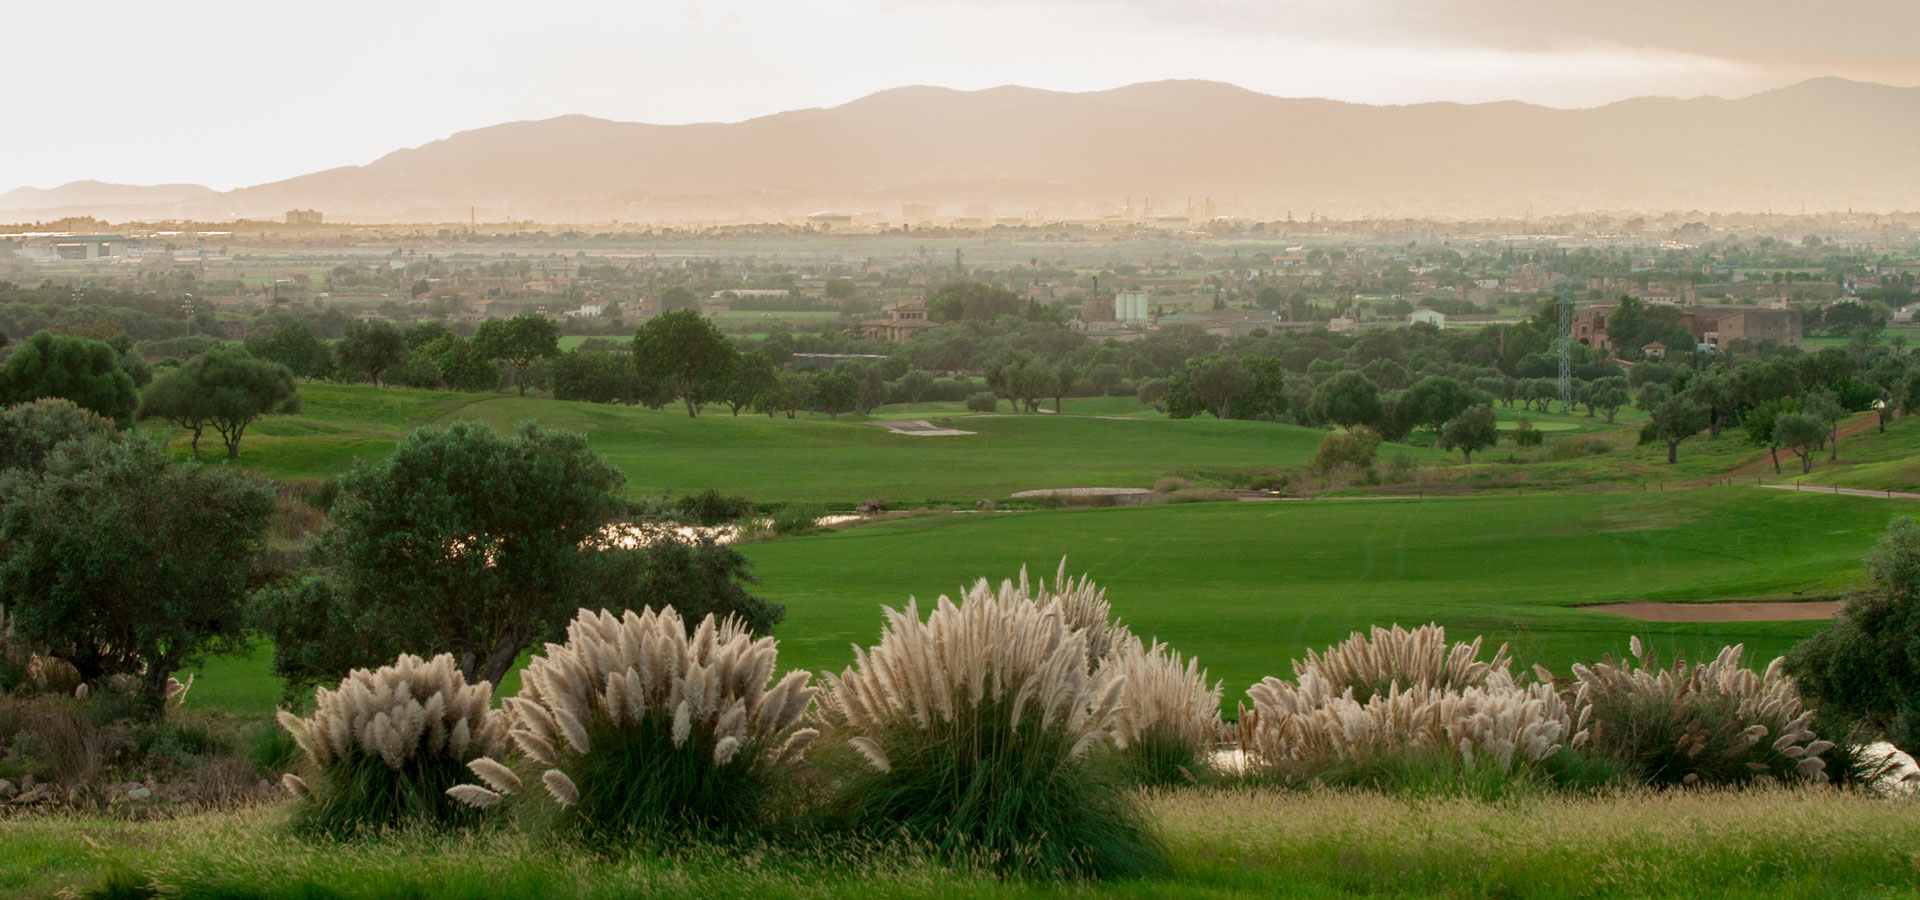 Son Gual property, golf view.